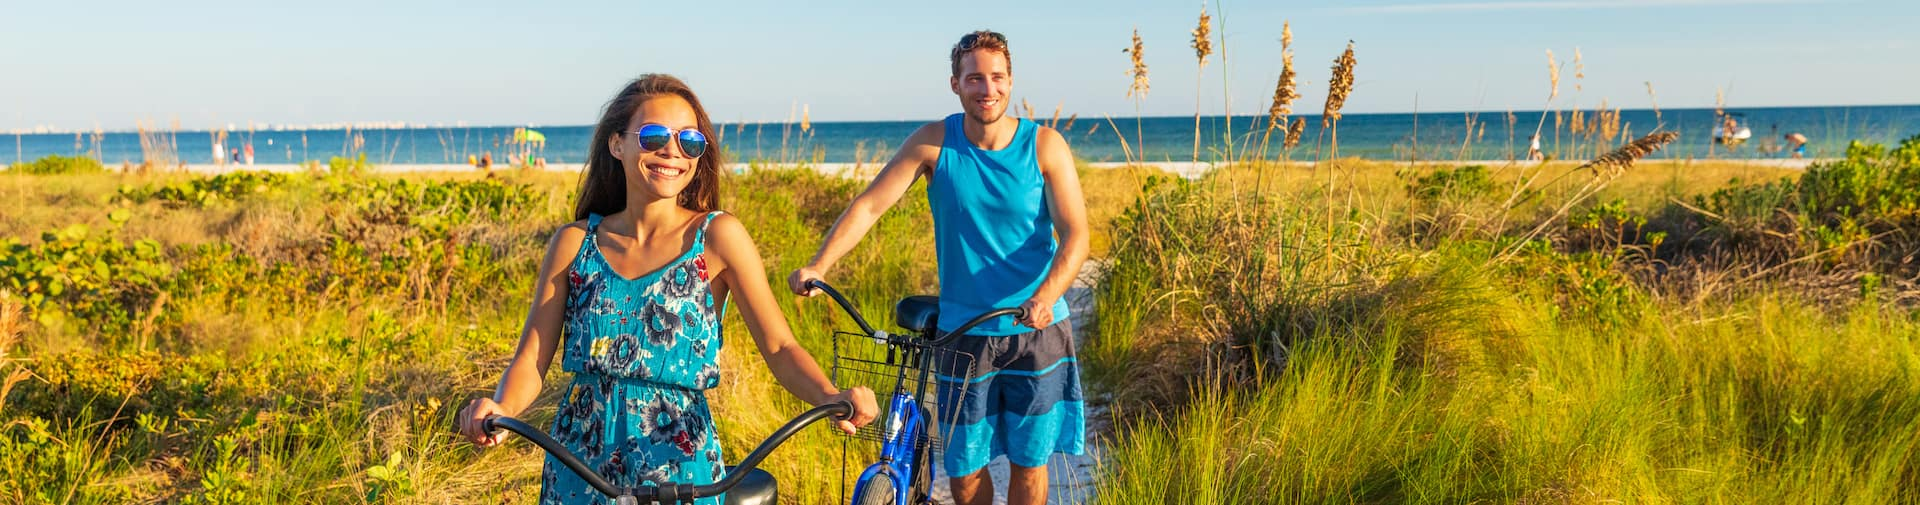 Happy couple biking on the beach.